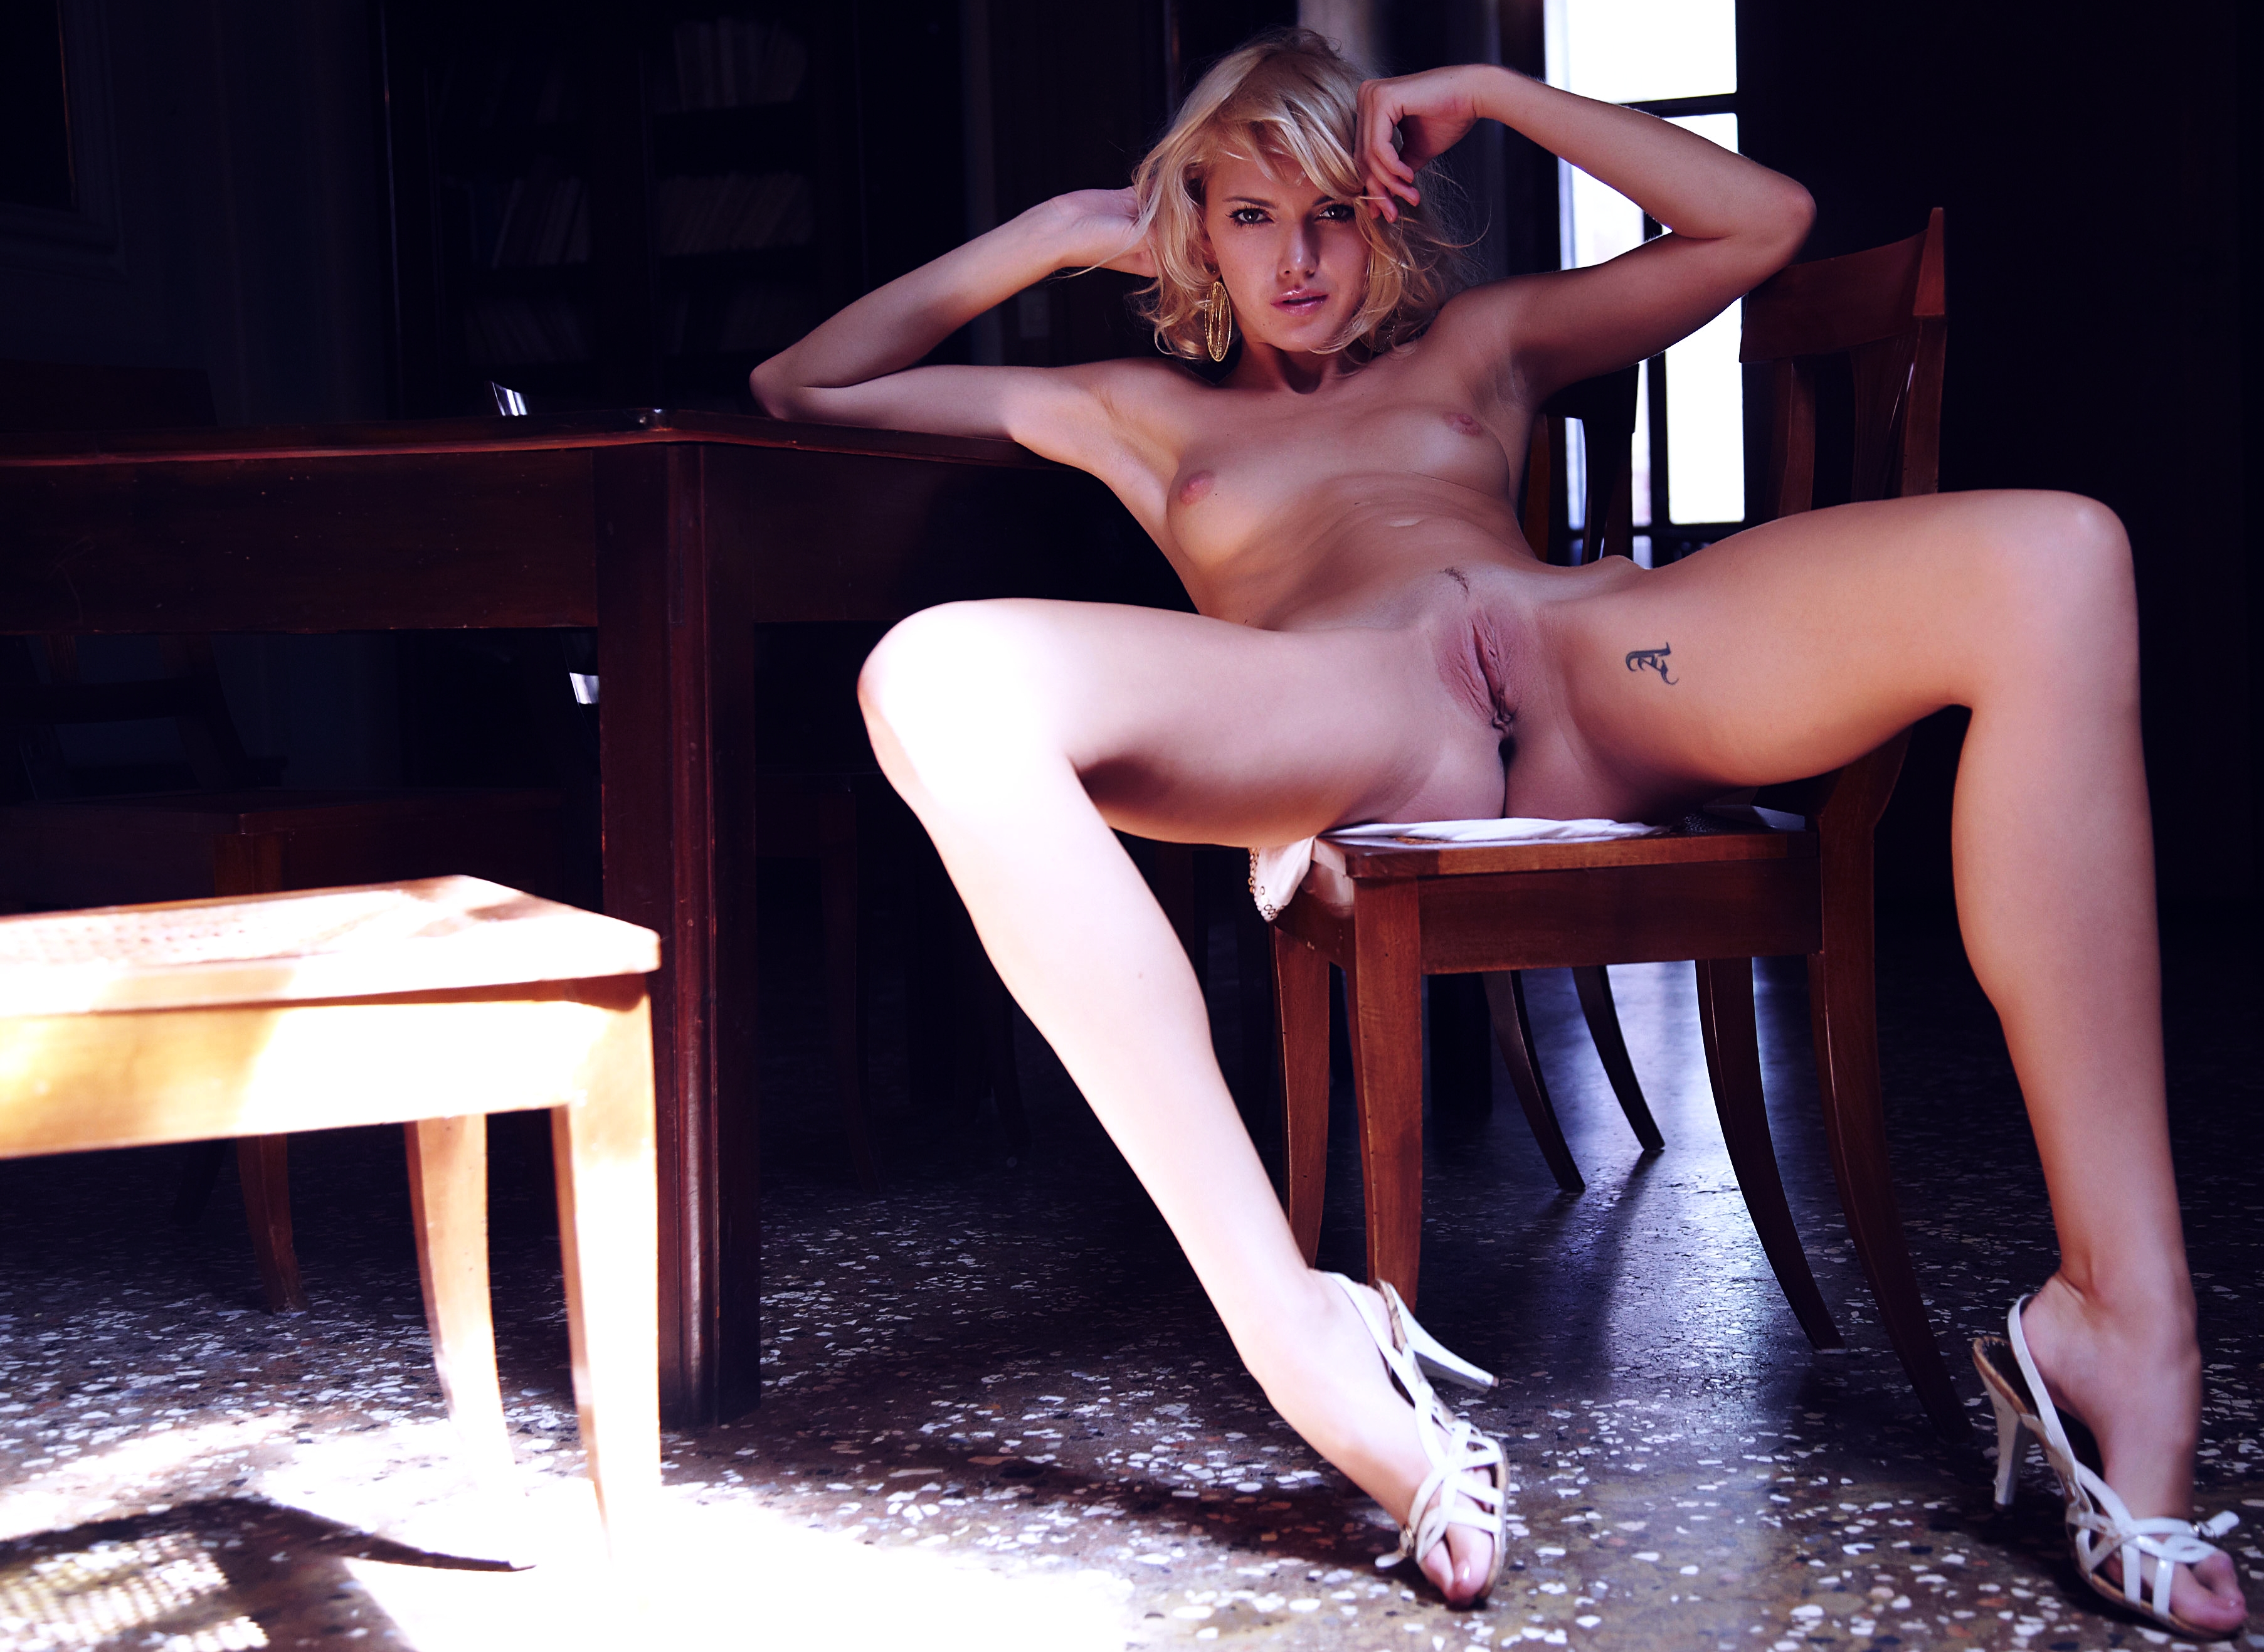 download photo 3610x2634 nude pussy vagina light chair sitting